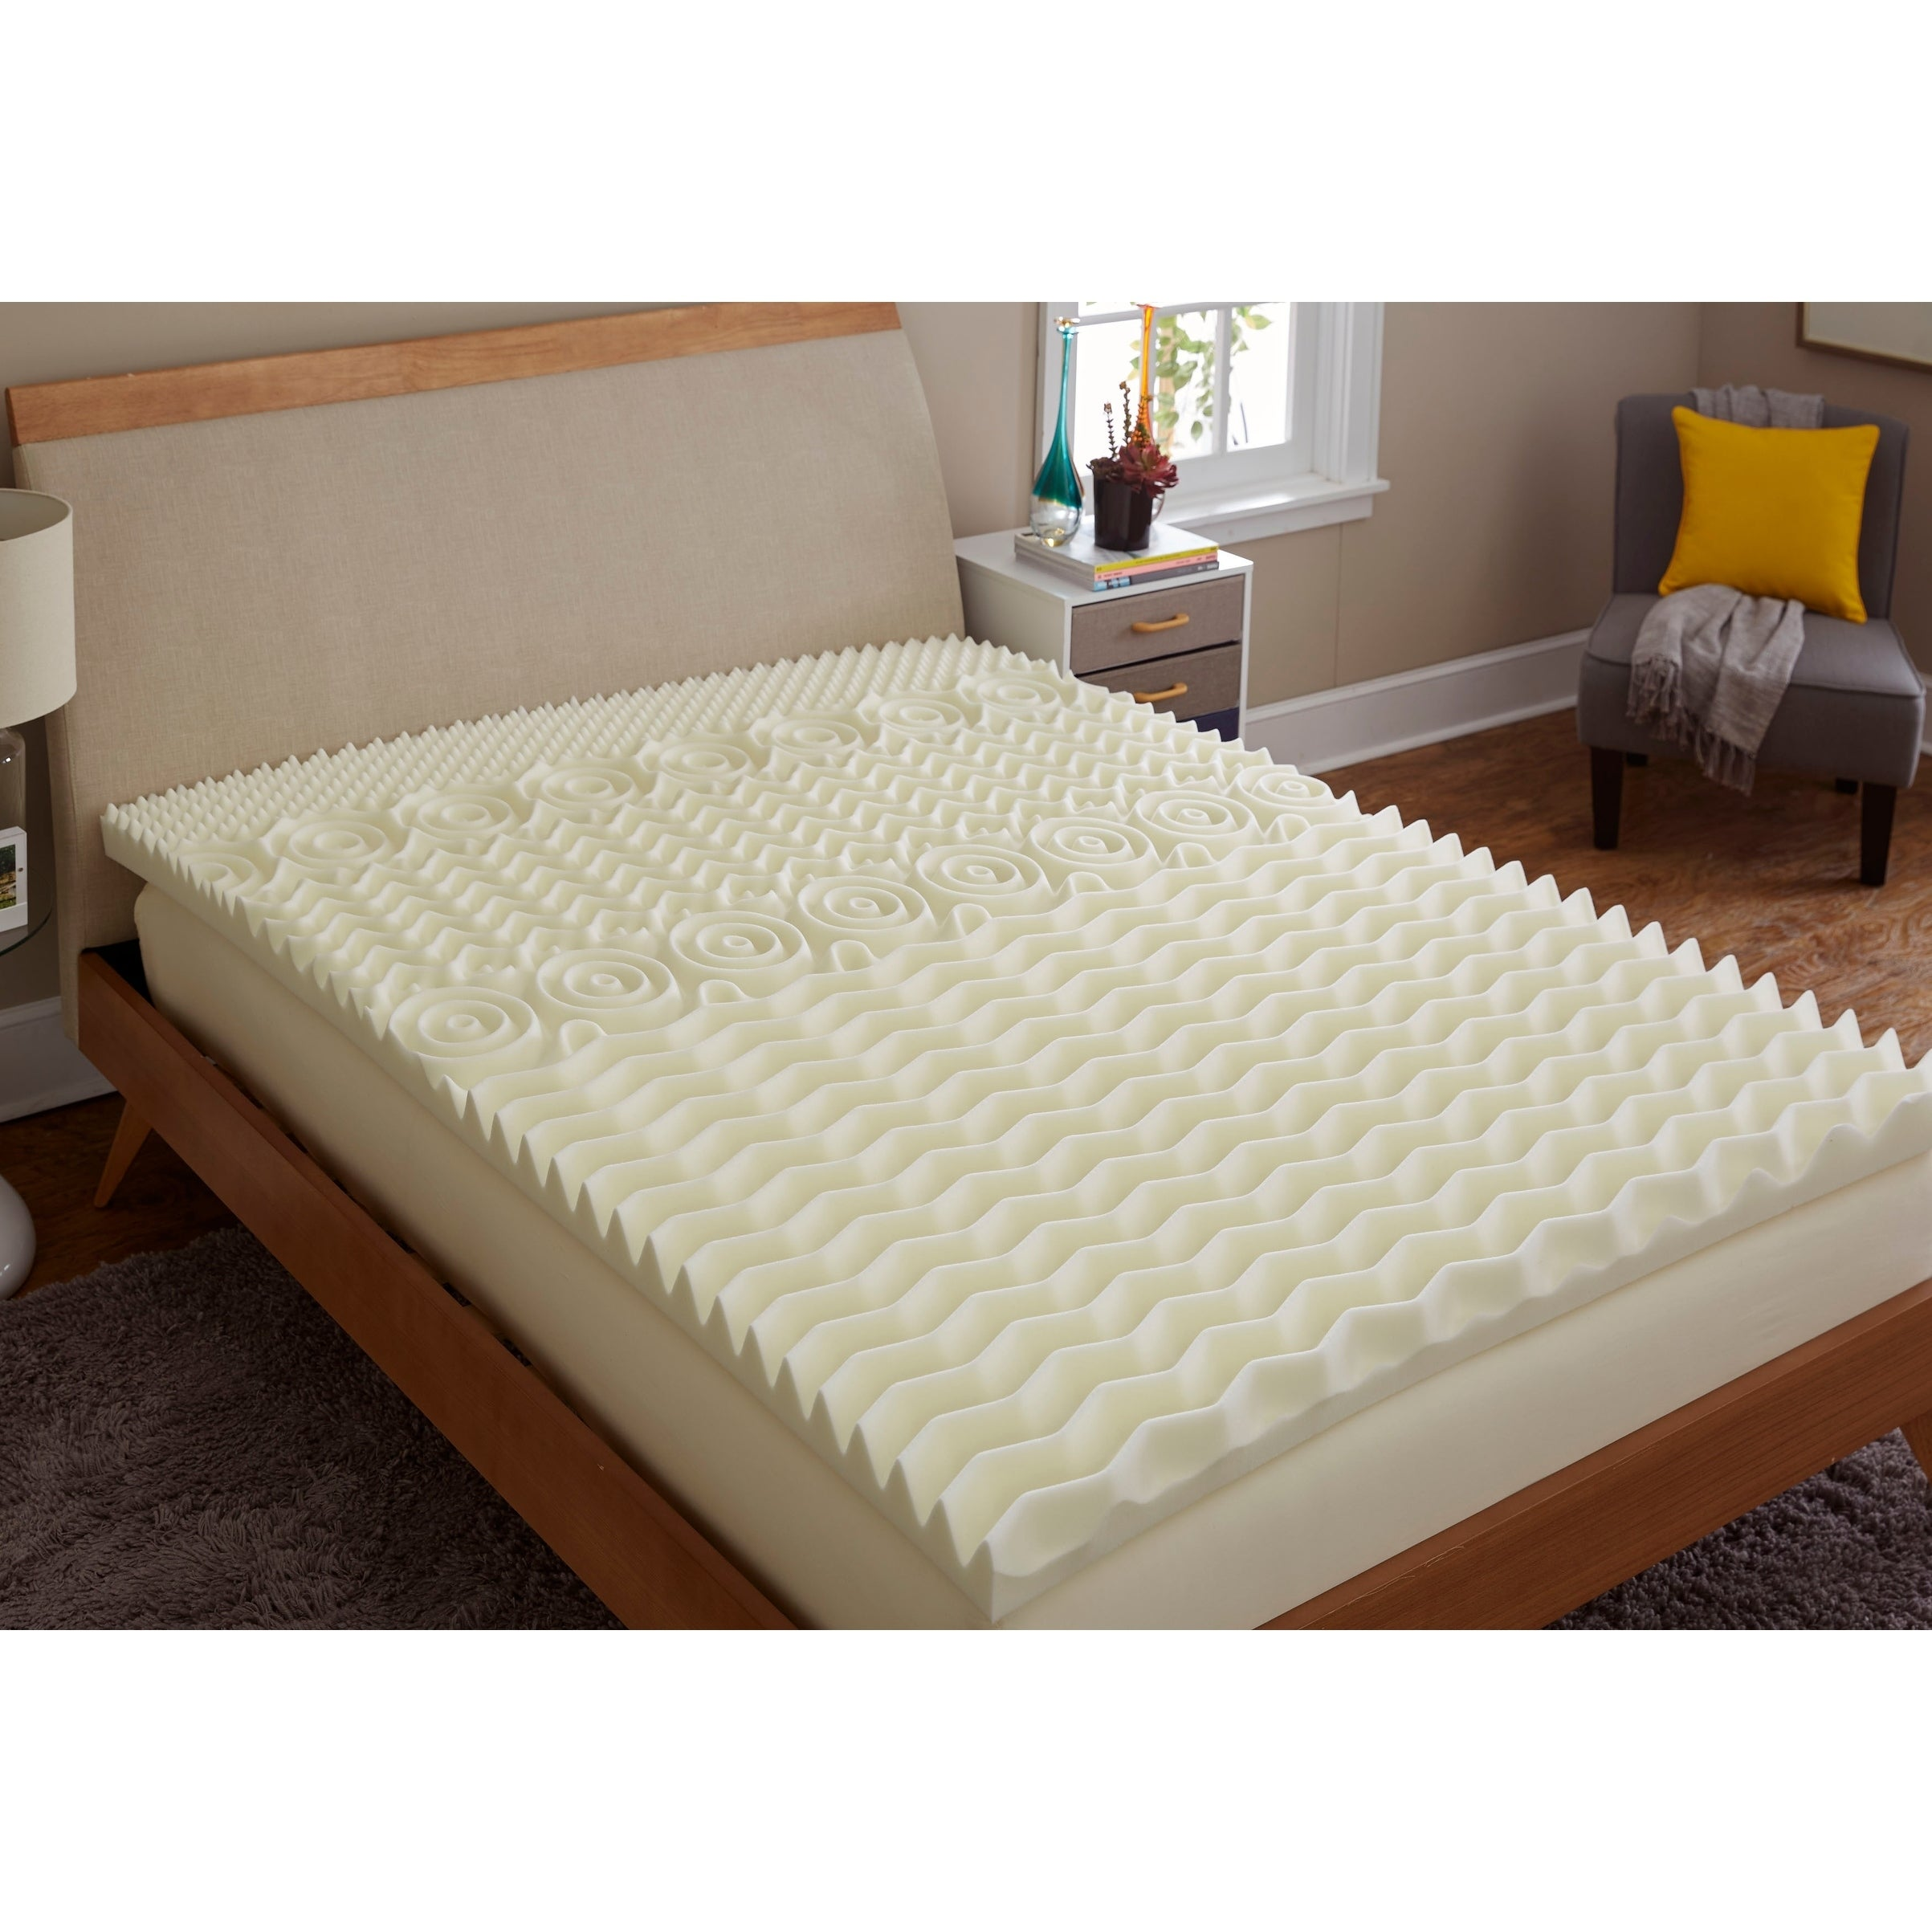 TruPedic USA CoolFlow 5 Zone 3-inch Textured Memory Foam ...